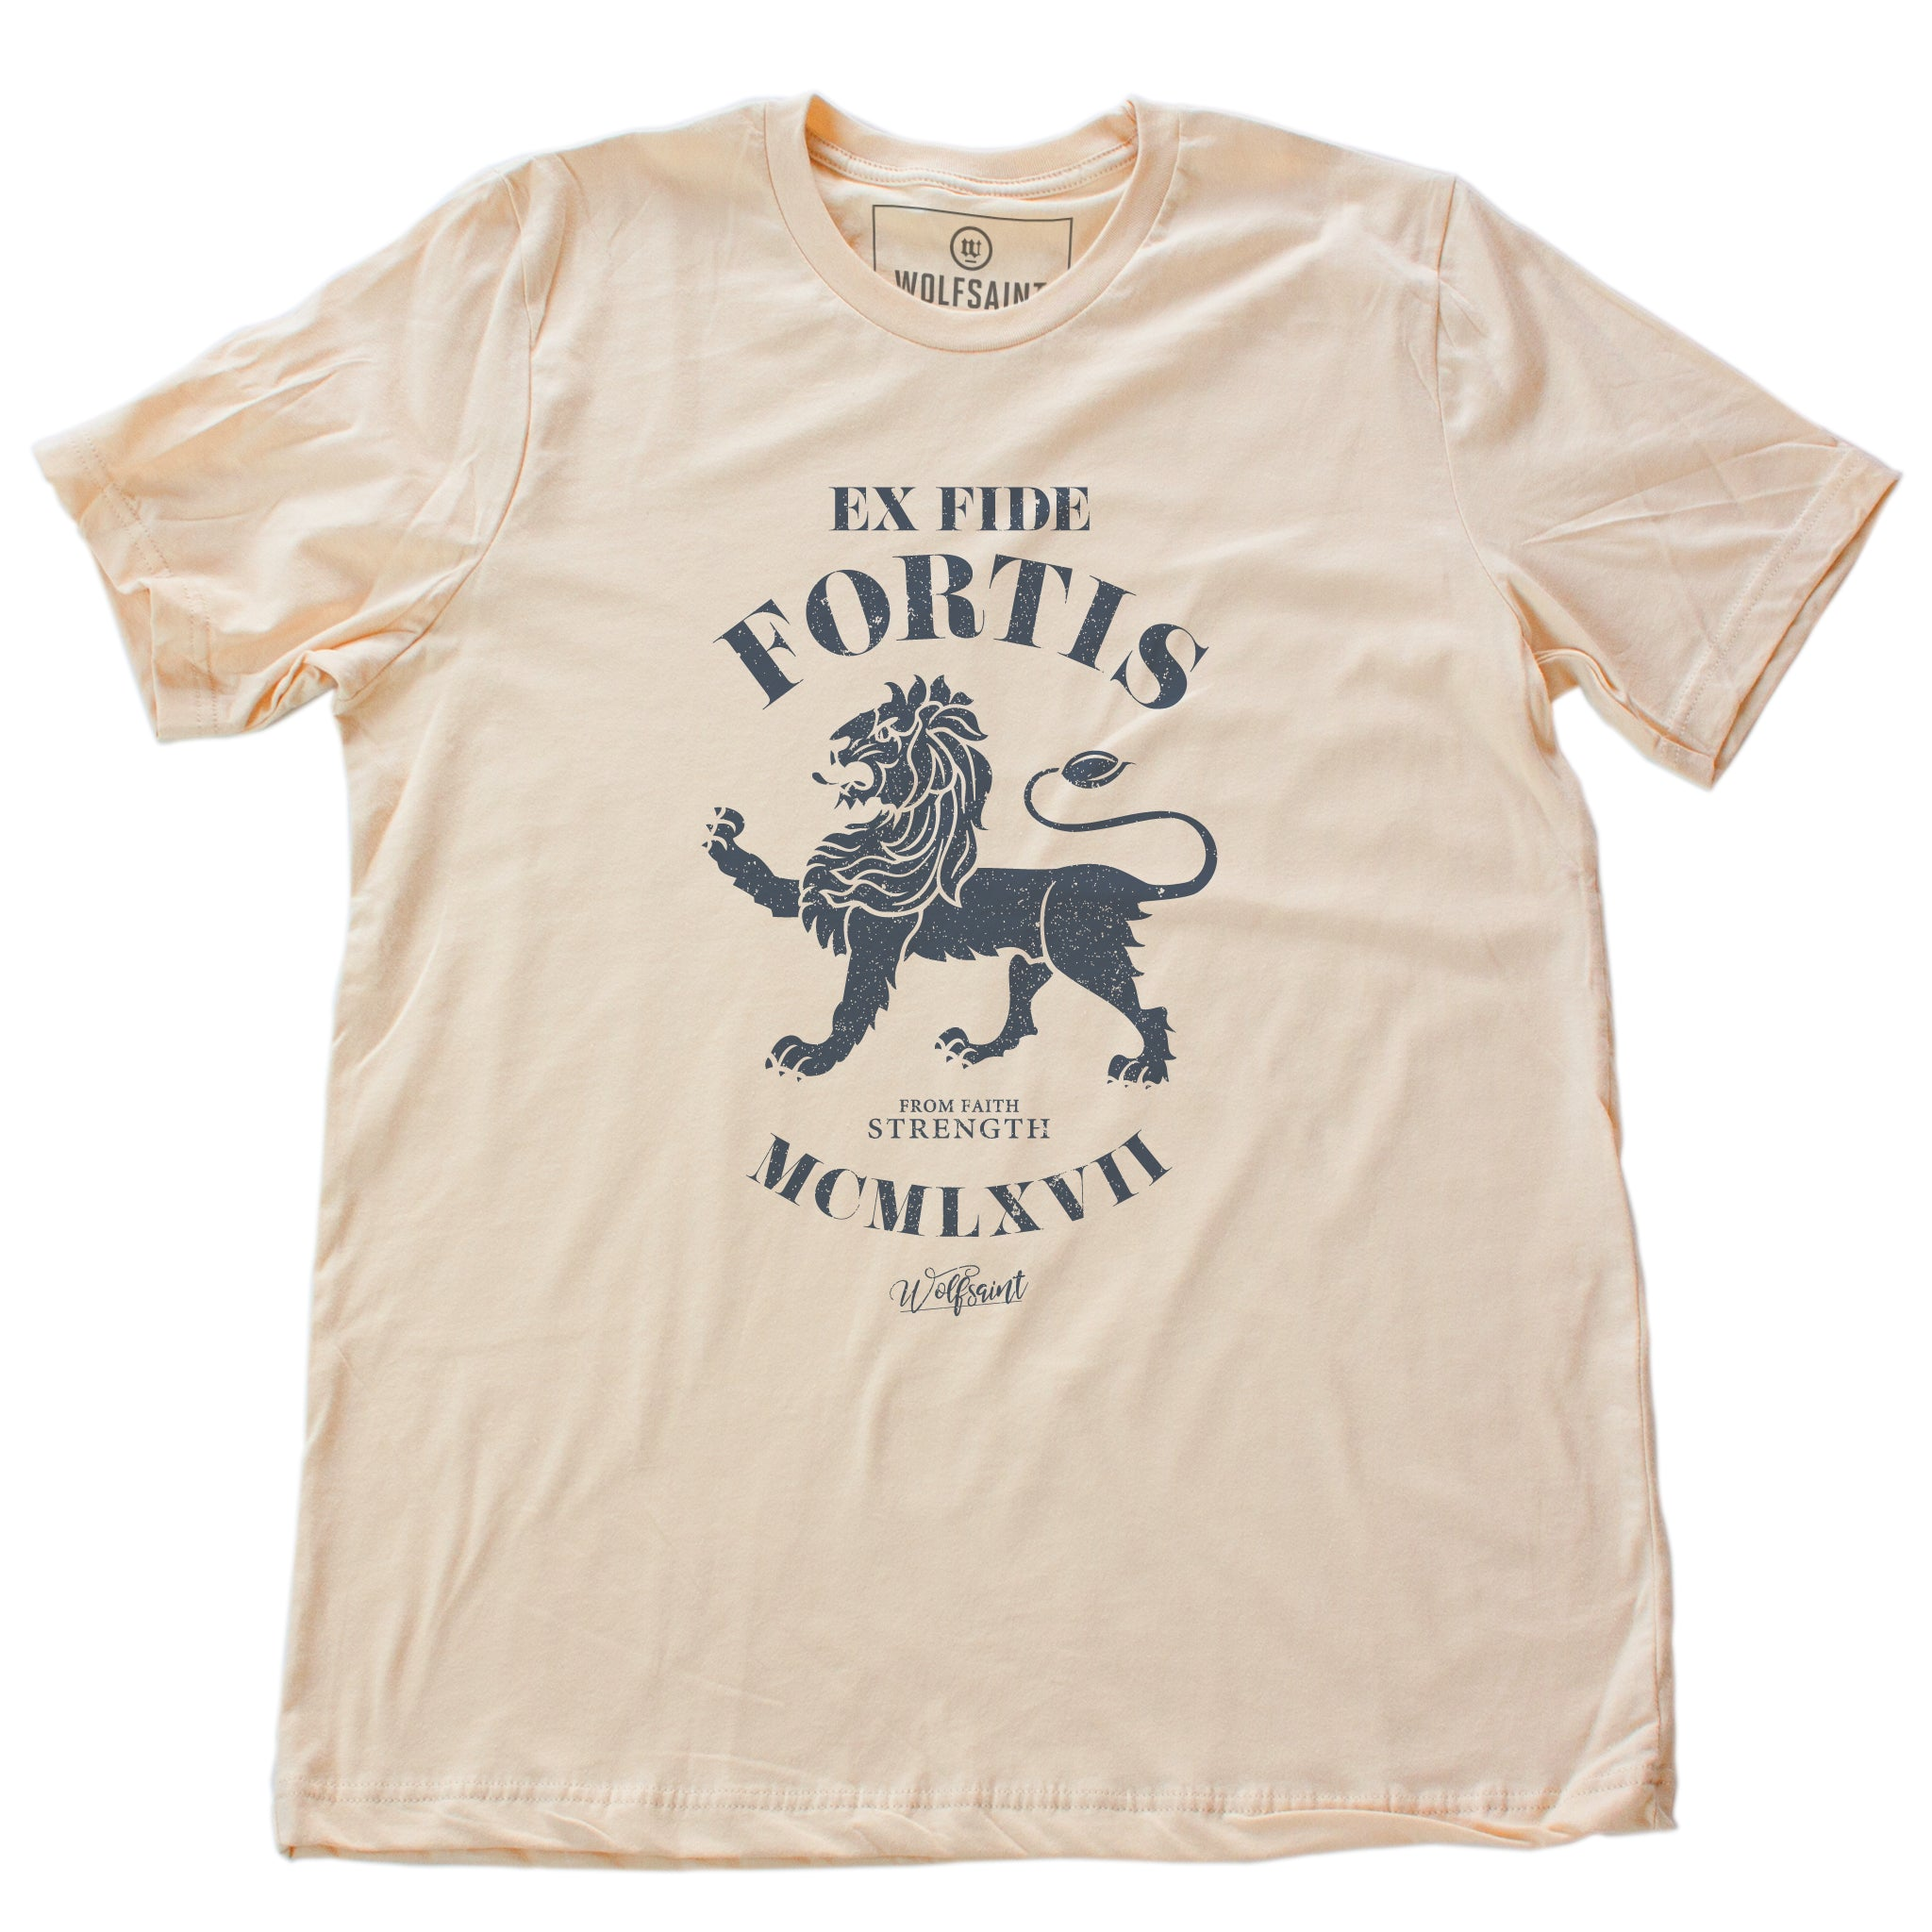 "A vintage-inspired classic Soft Cream retro t-shirt featuring a strong graphic of a lion, with the Latin phrase meaning ""Out of faith, strength."" By wolfsaint.net"